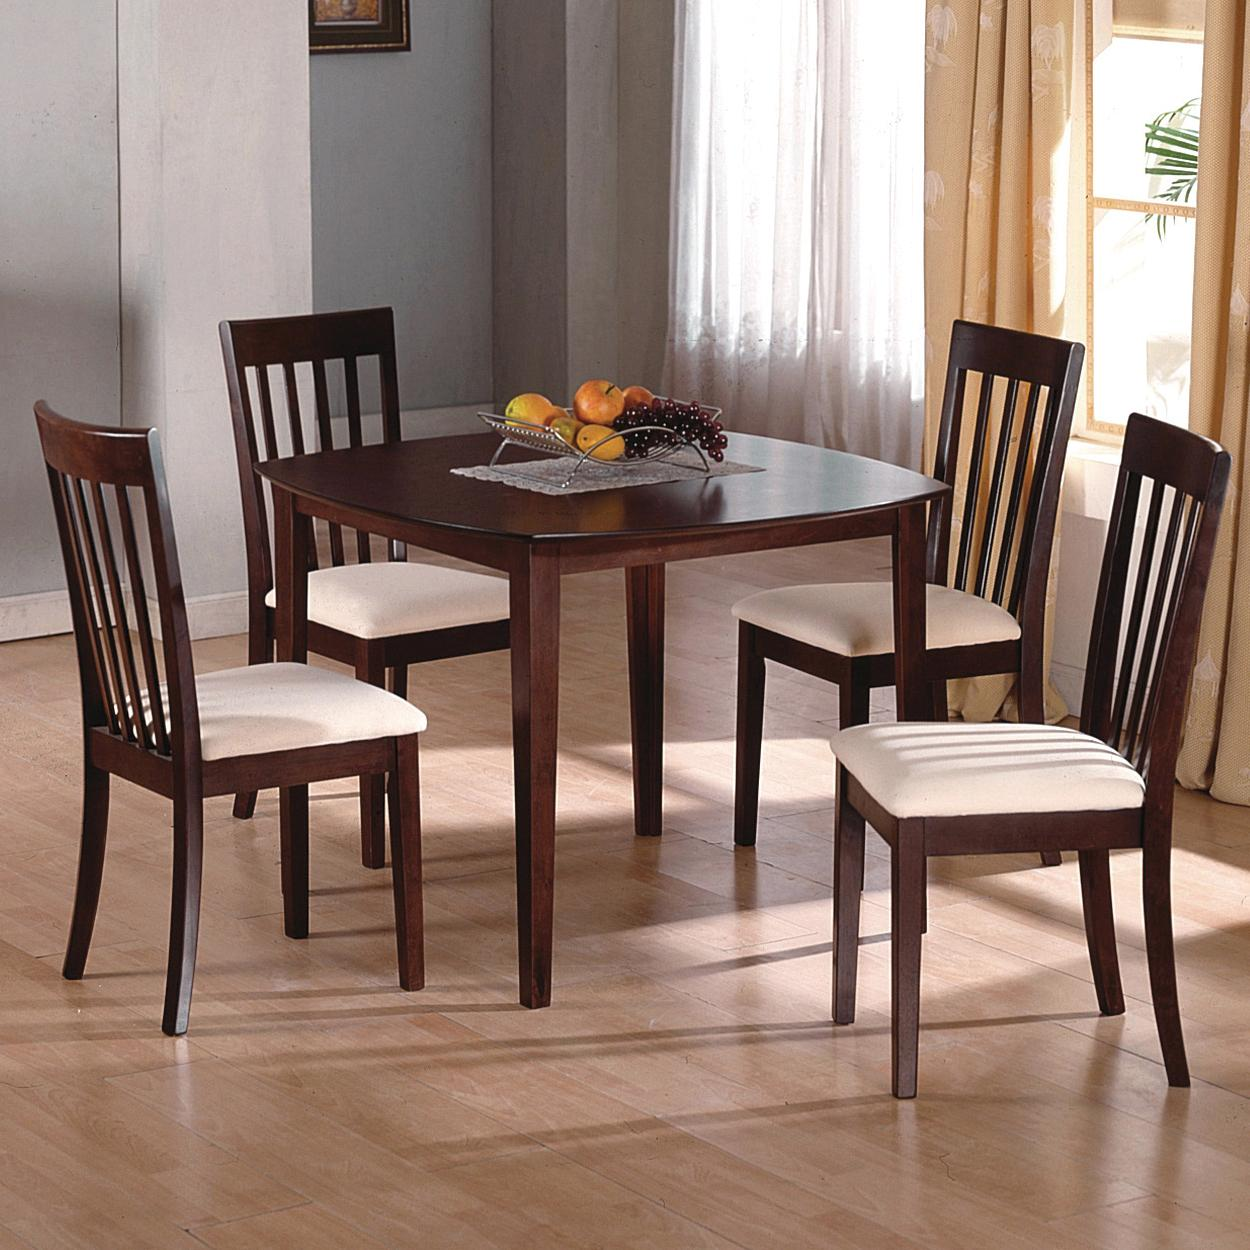 Crown Mark Ashland 5 Piece Kitchen Table and Chair Set - Item Number: 1083-ESP-N+4x1084C